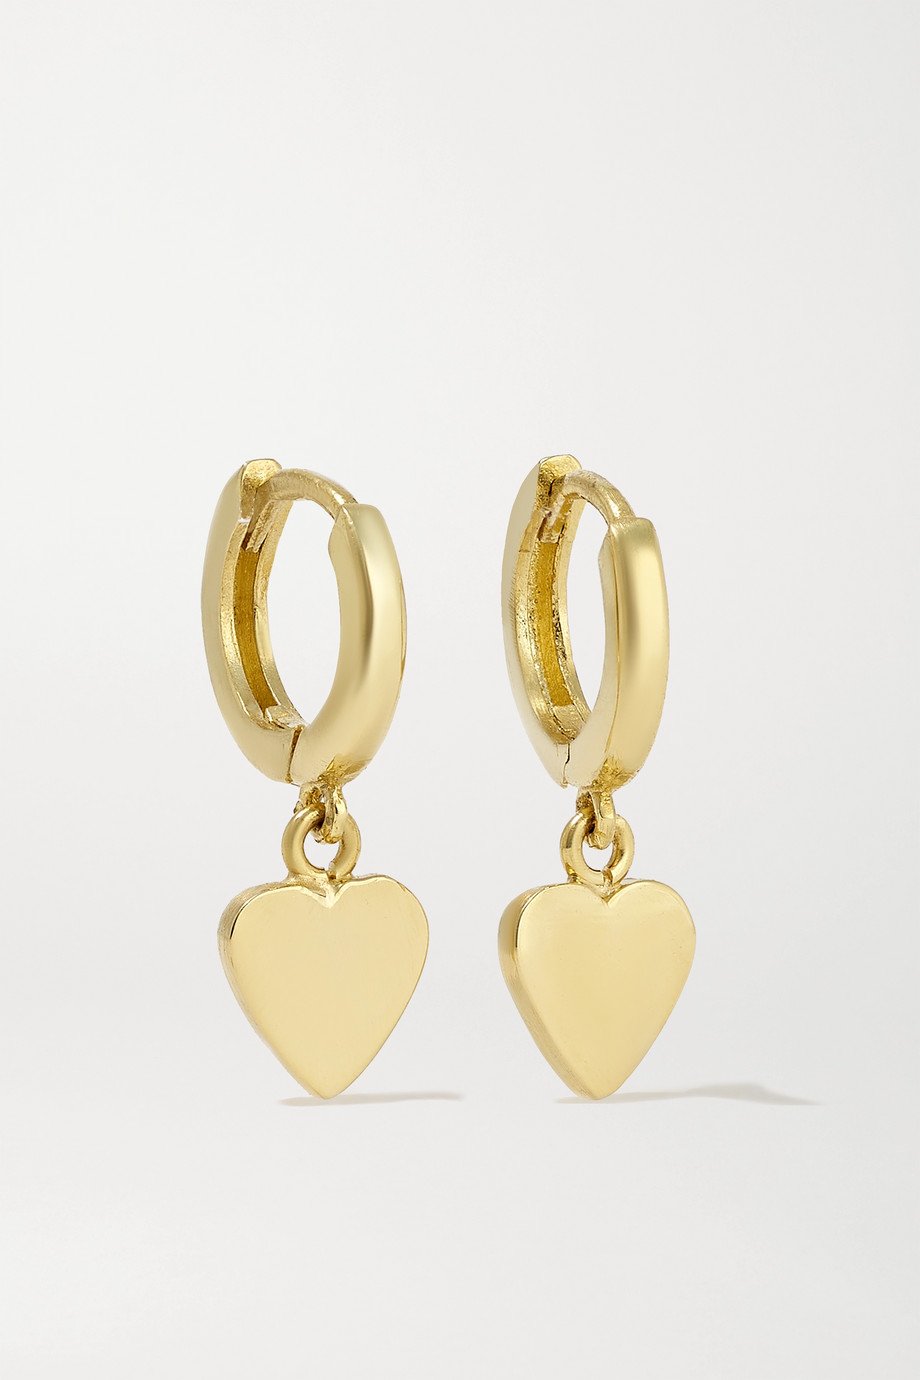 JENNIFER MEYER 18-karat gold hoop earrings